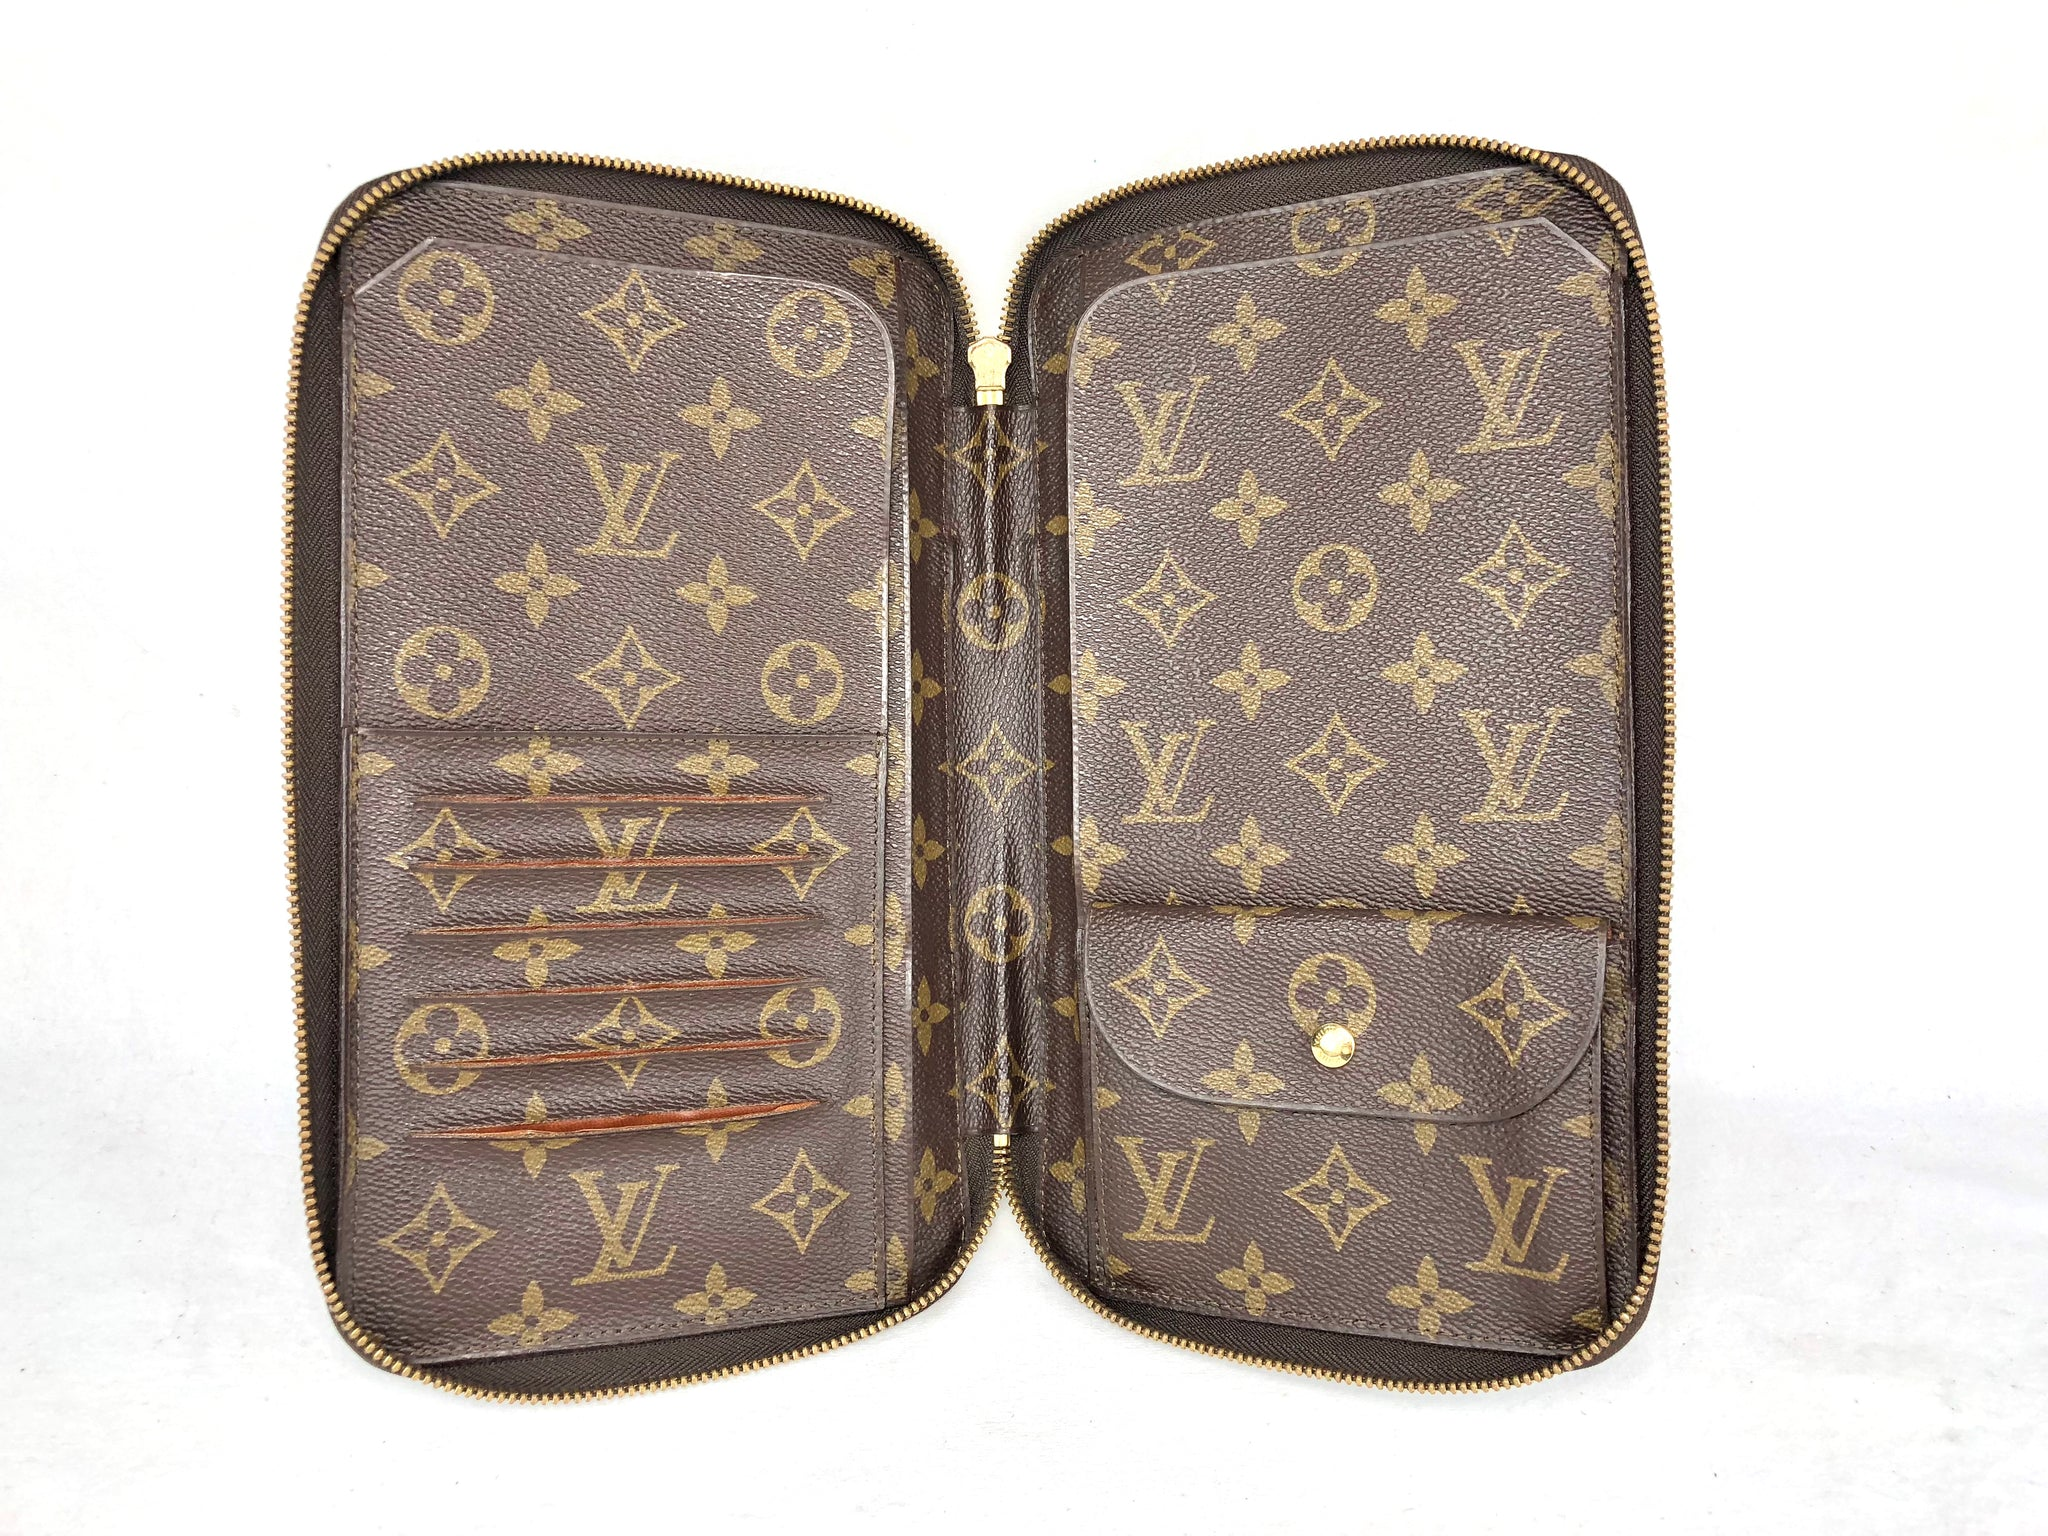 Rare LOUIS VUITTON XL Zippy Organizer Travel Wallet Clutch